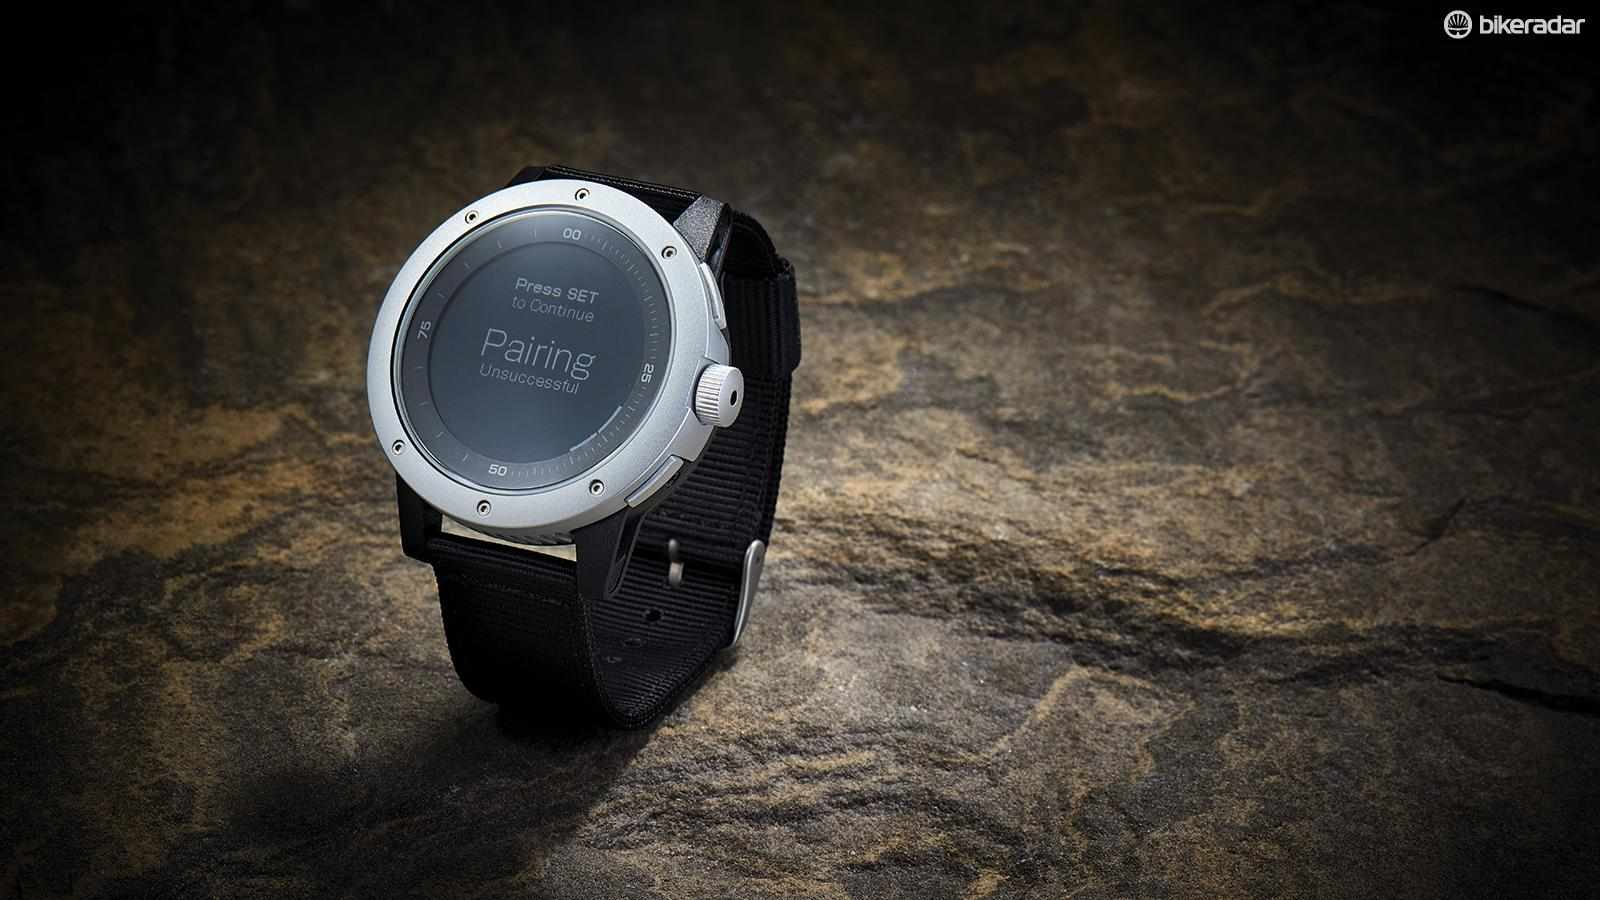 Powered from your body heat via thermoelectric generators housed within the 15mm deep case